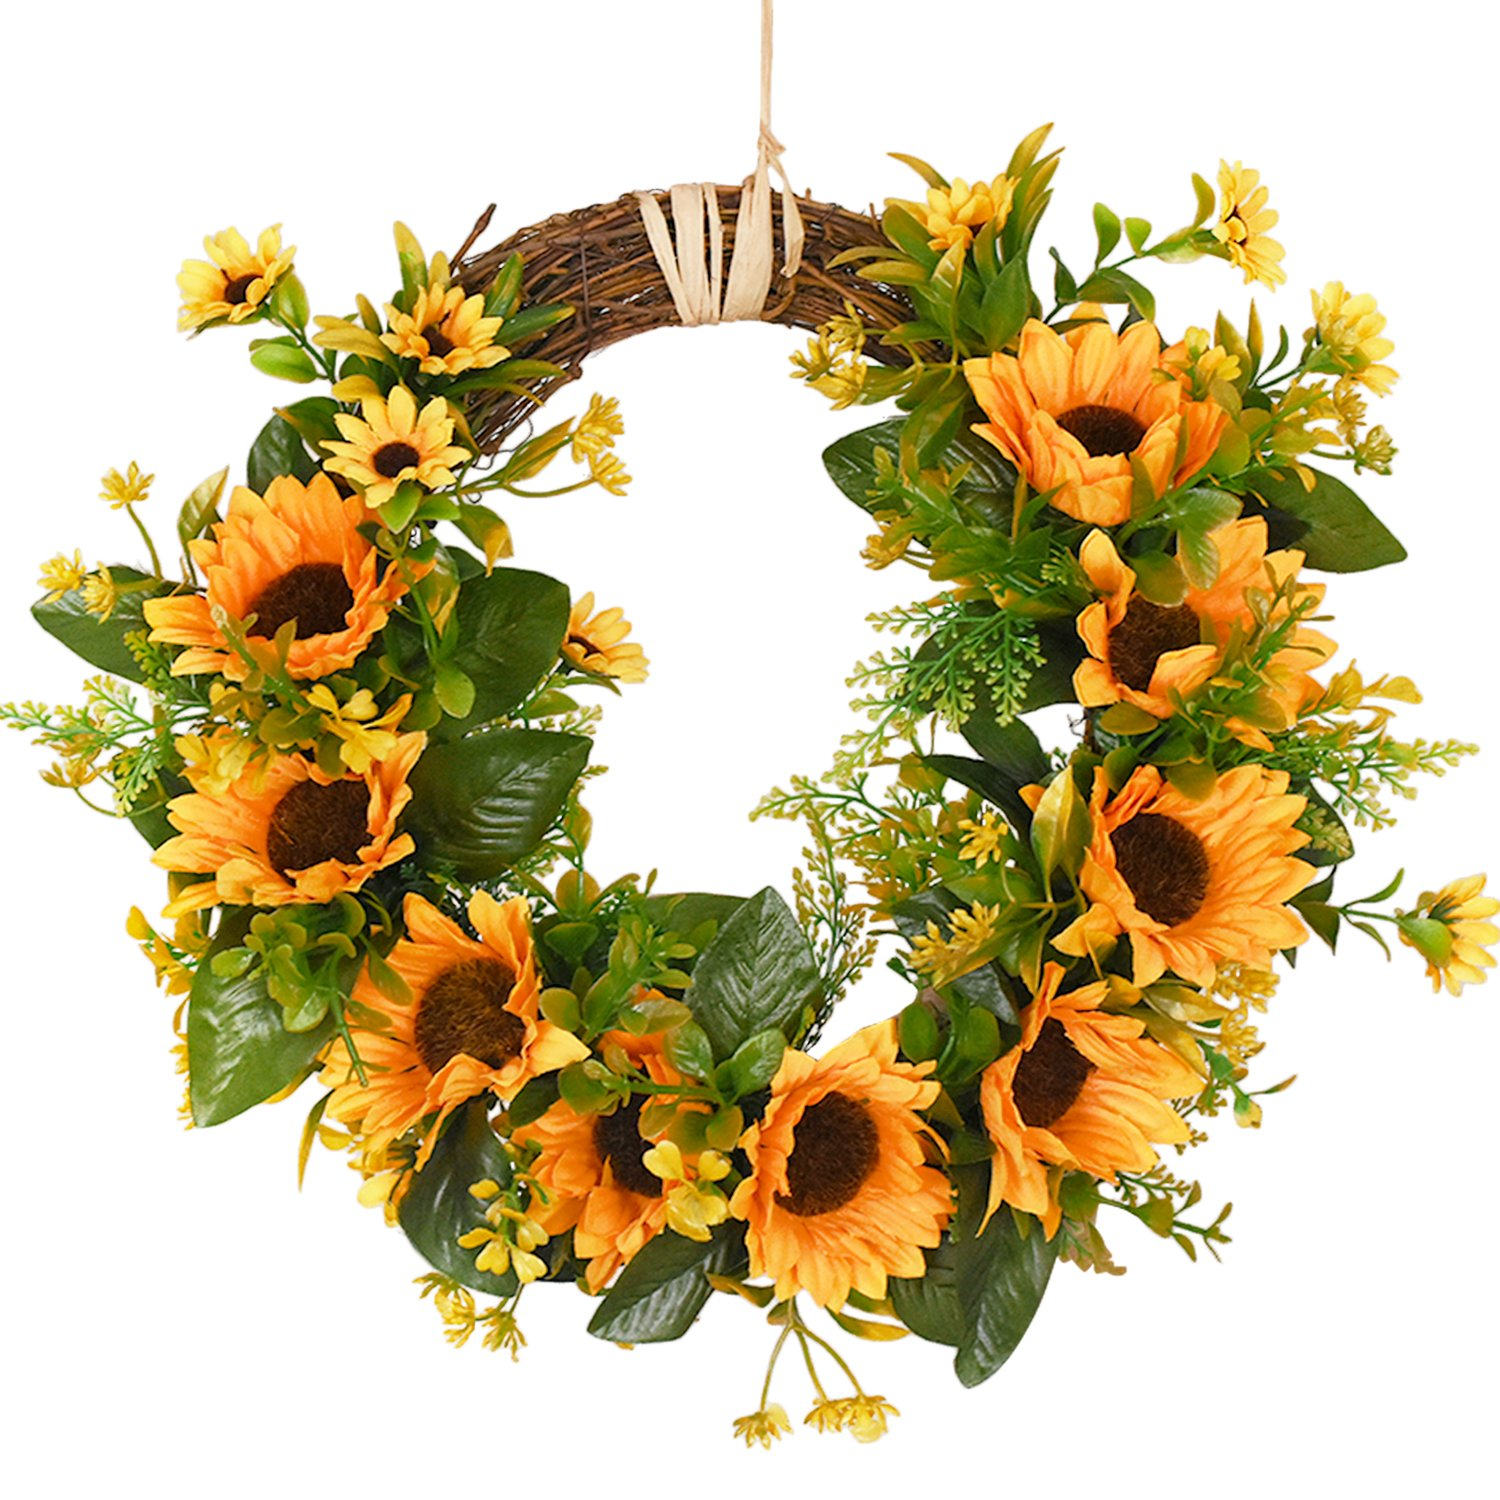 Artificial Sunflower Wreath Flower Wreath with Yellow Sunflower and Green Leaves for Front Door Indoor or Outdoor Wall Wedding Home Decoration, 13.8'' by Sunm Boutique